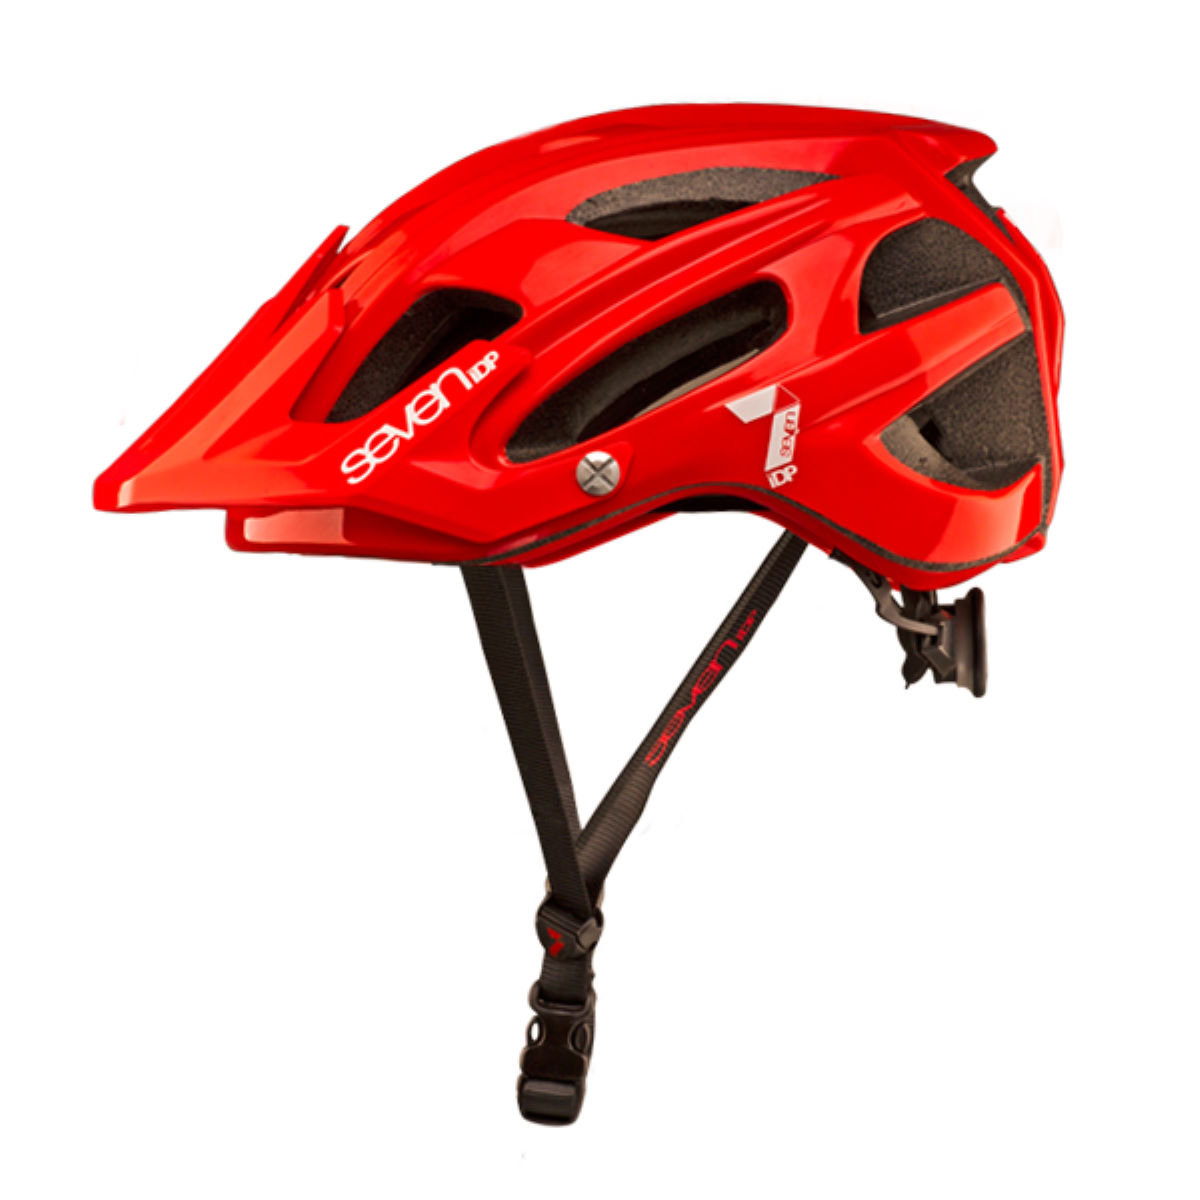 Casque 7 iDP M4 - S/M Red - White Casques VTT